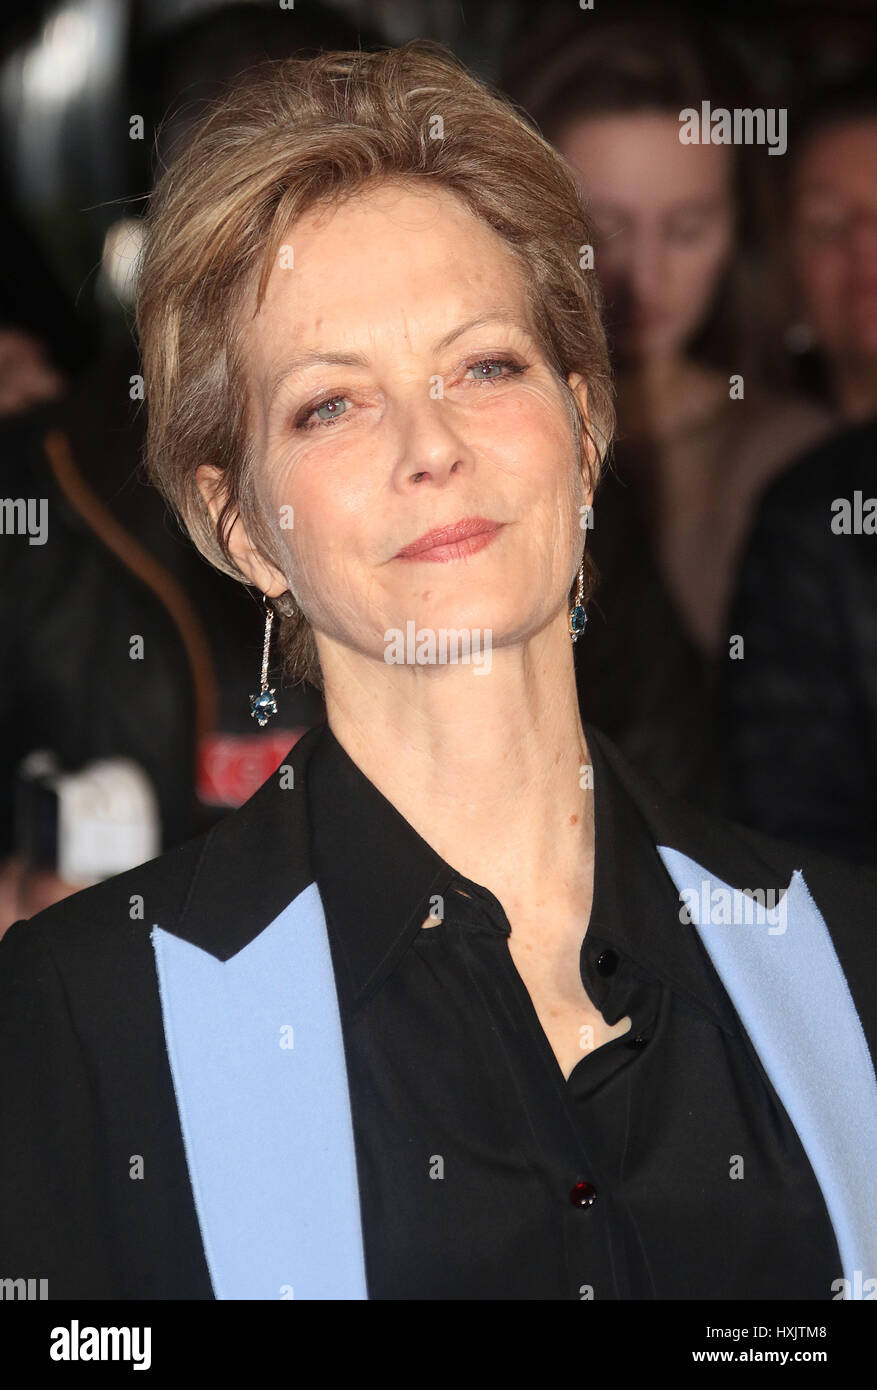 Mar 16, 2017 - Jenny Seagrove attending Another Mother's Son' World Premiere, Odeon Leicester Square in - Stock Image